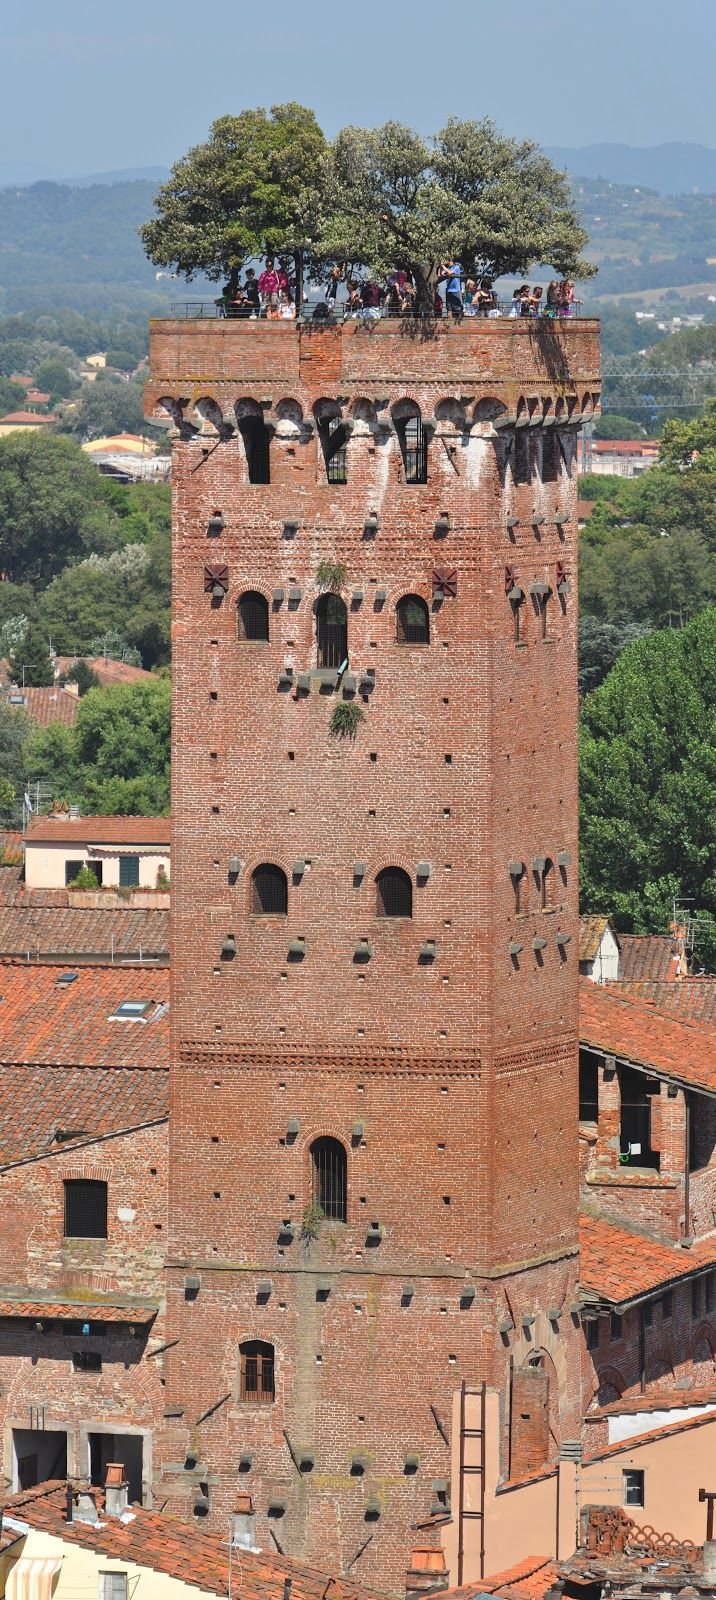 Guinigi Tower in Tuscany, Italy (Lucca)